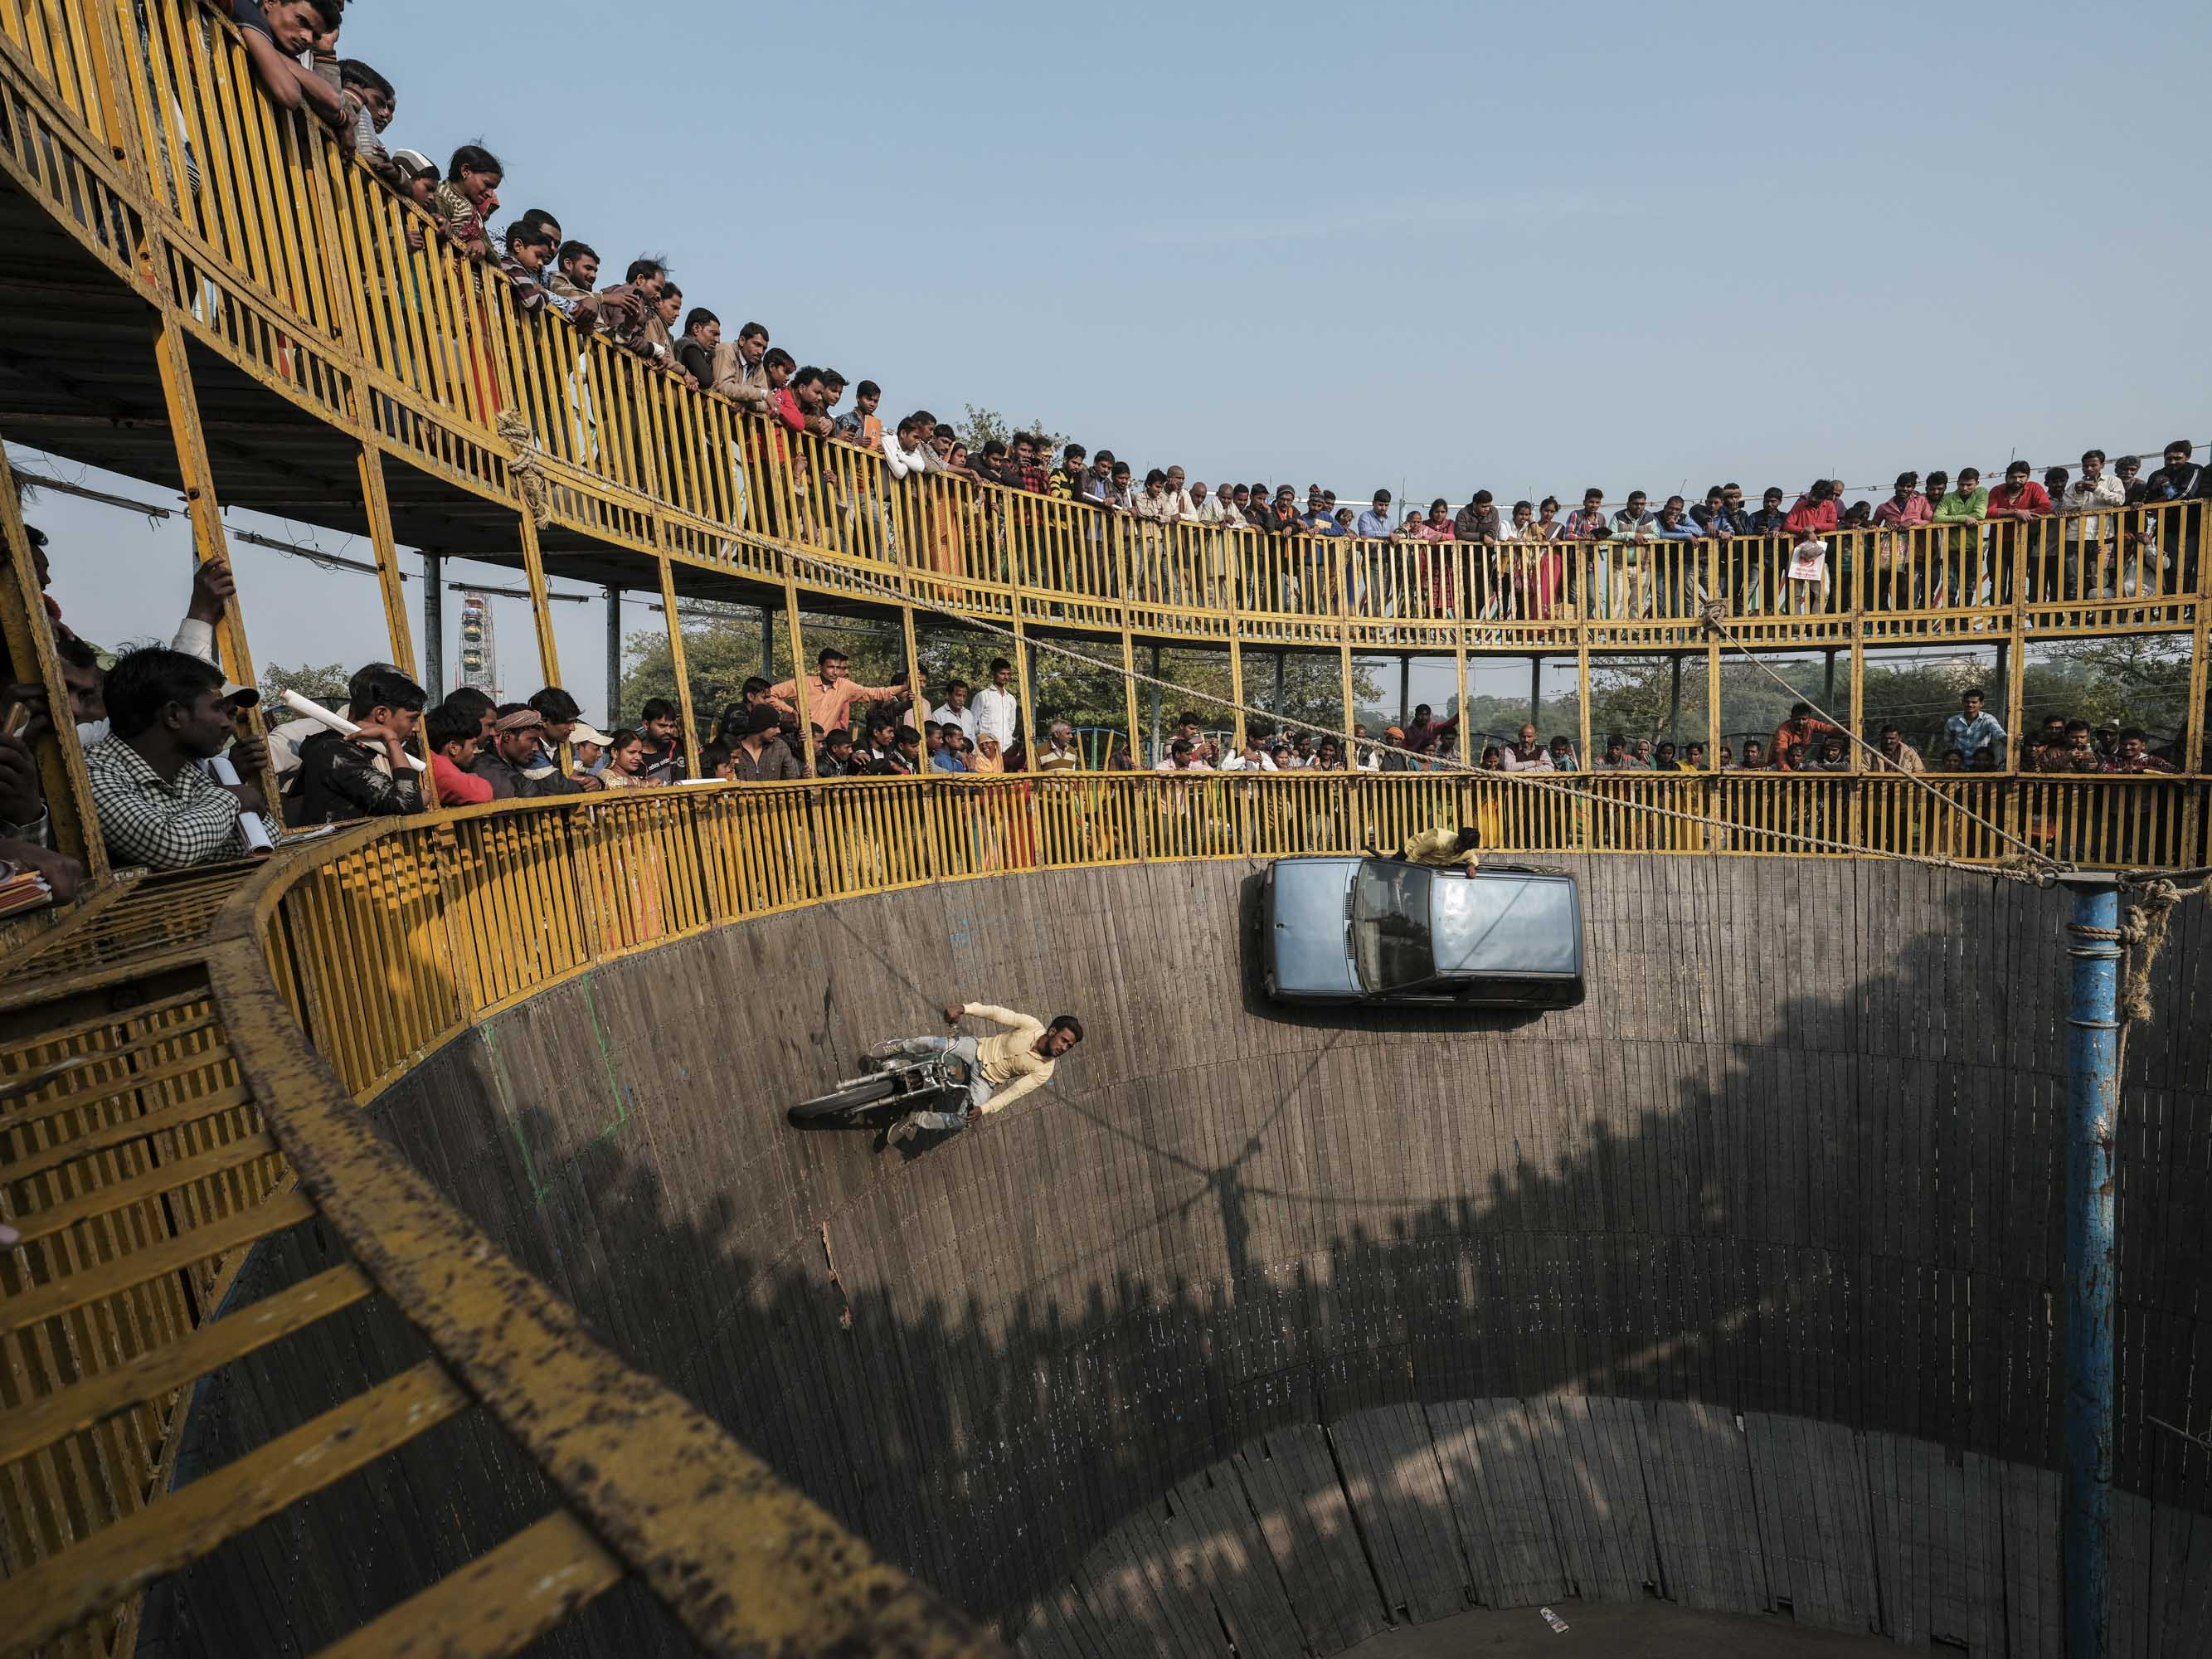 show car death wall people pilgrims Kumbh mela 2019 India Allahabad Prayagraj Ardh hindu religious Festival event rivers photographer jose jeuland photography